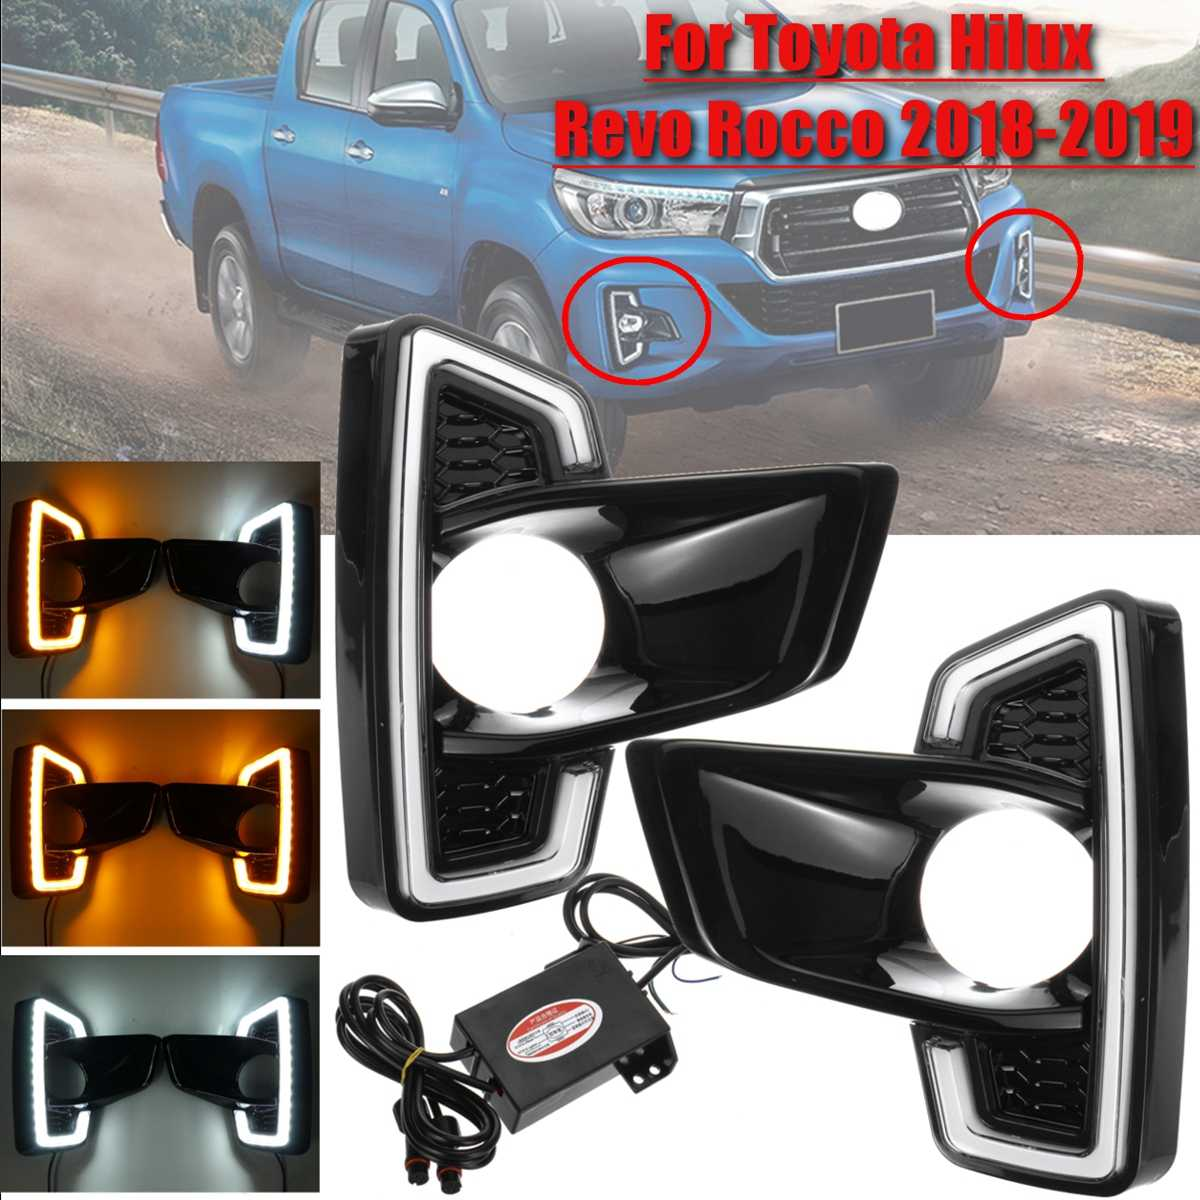 1 Pair Car Front Bumper LED DRL For Toyota Hilux Revo Rocco 2018 2019 Styling Fog Light Driving Lamp White Yellow Turn Signal1 Pair Car Front Bumper LED DRL For Toyota Hilux Revo Rocco 2018 2019 Styling Fog Light Driving Lamp White Yellow Turn Signal